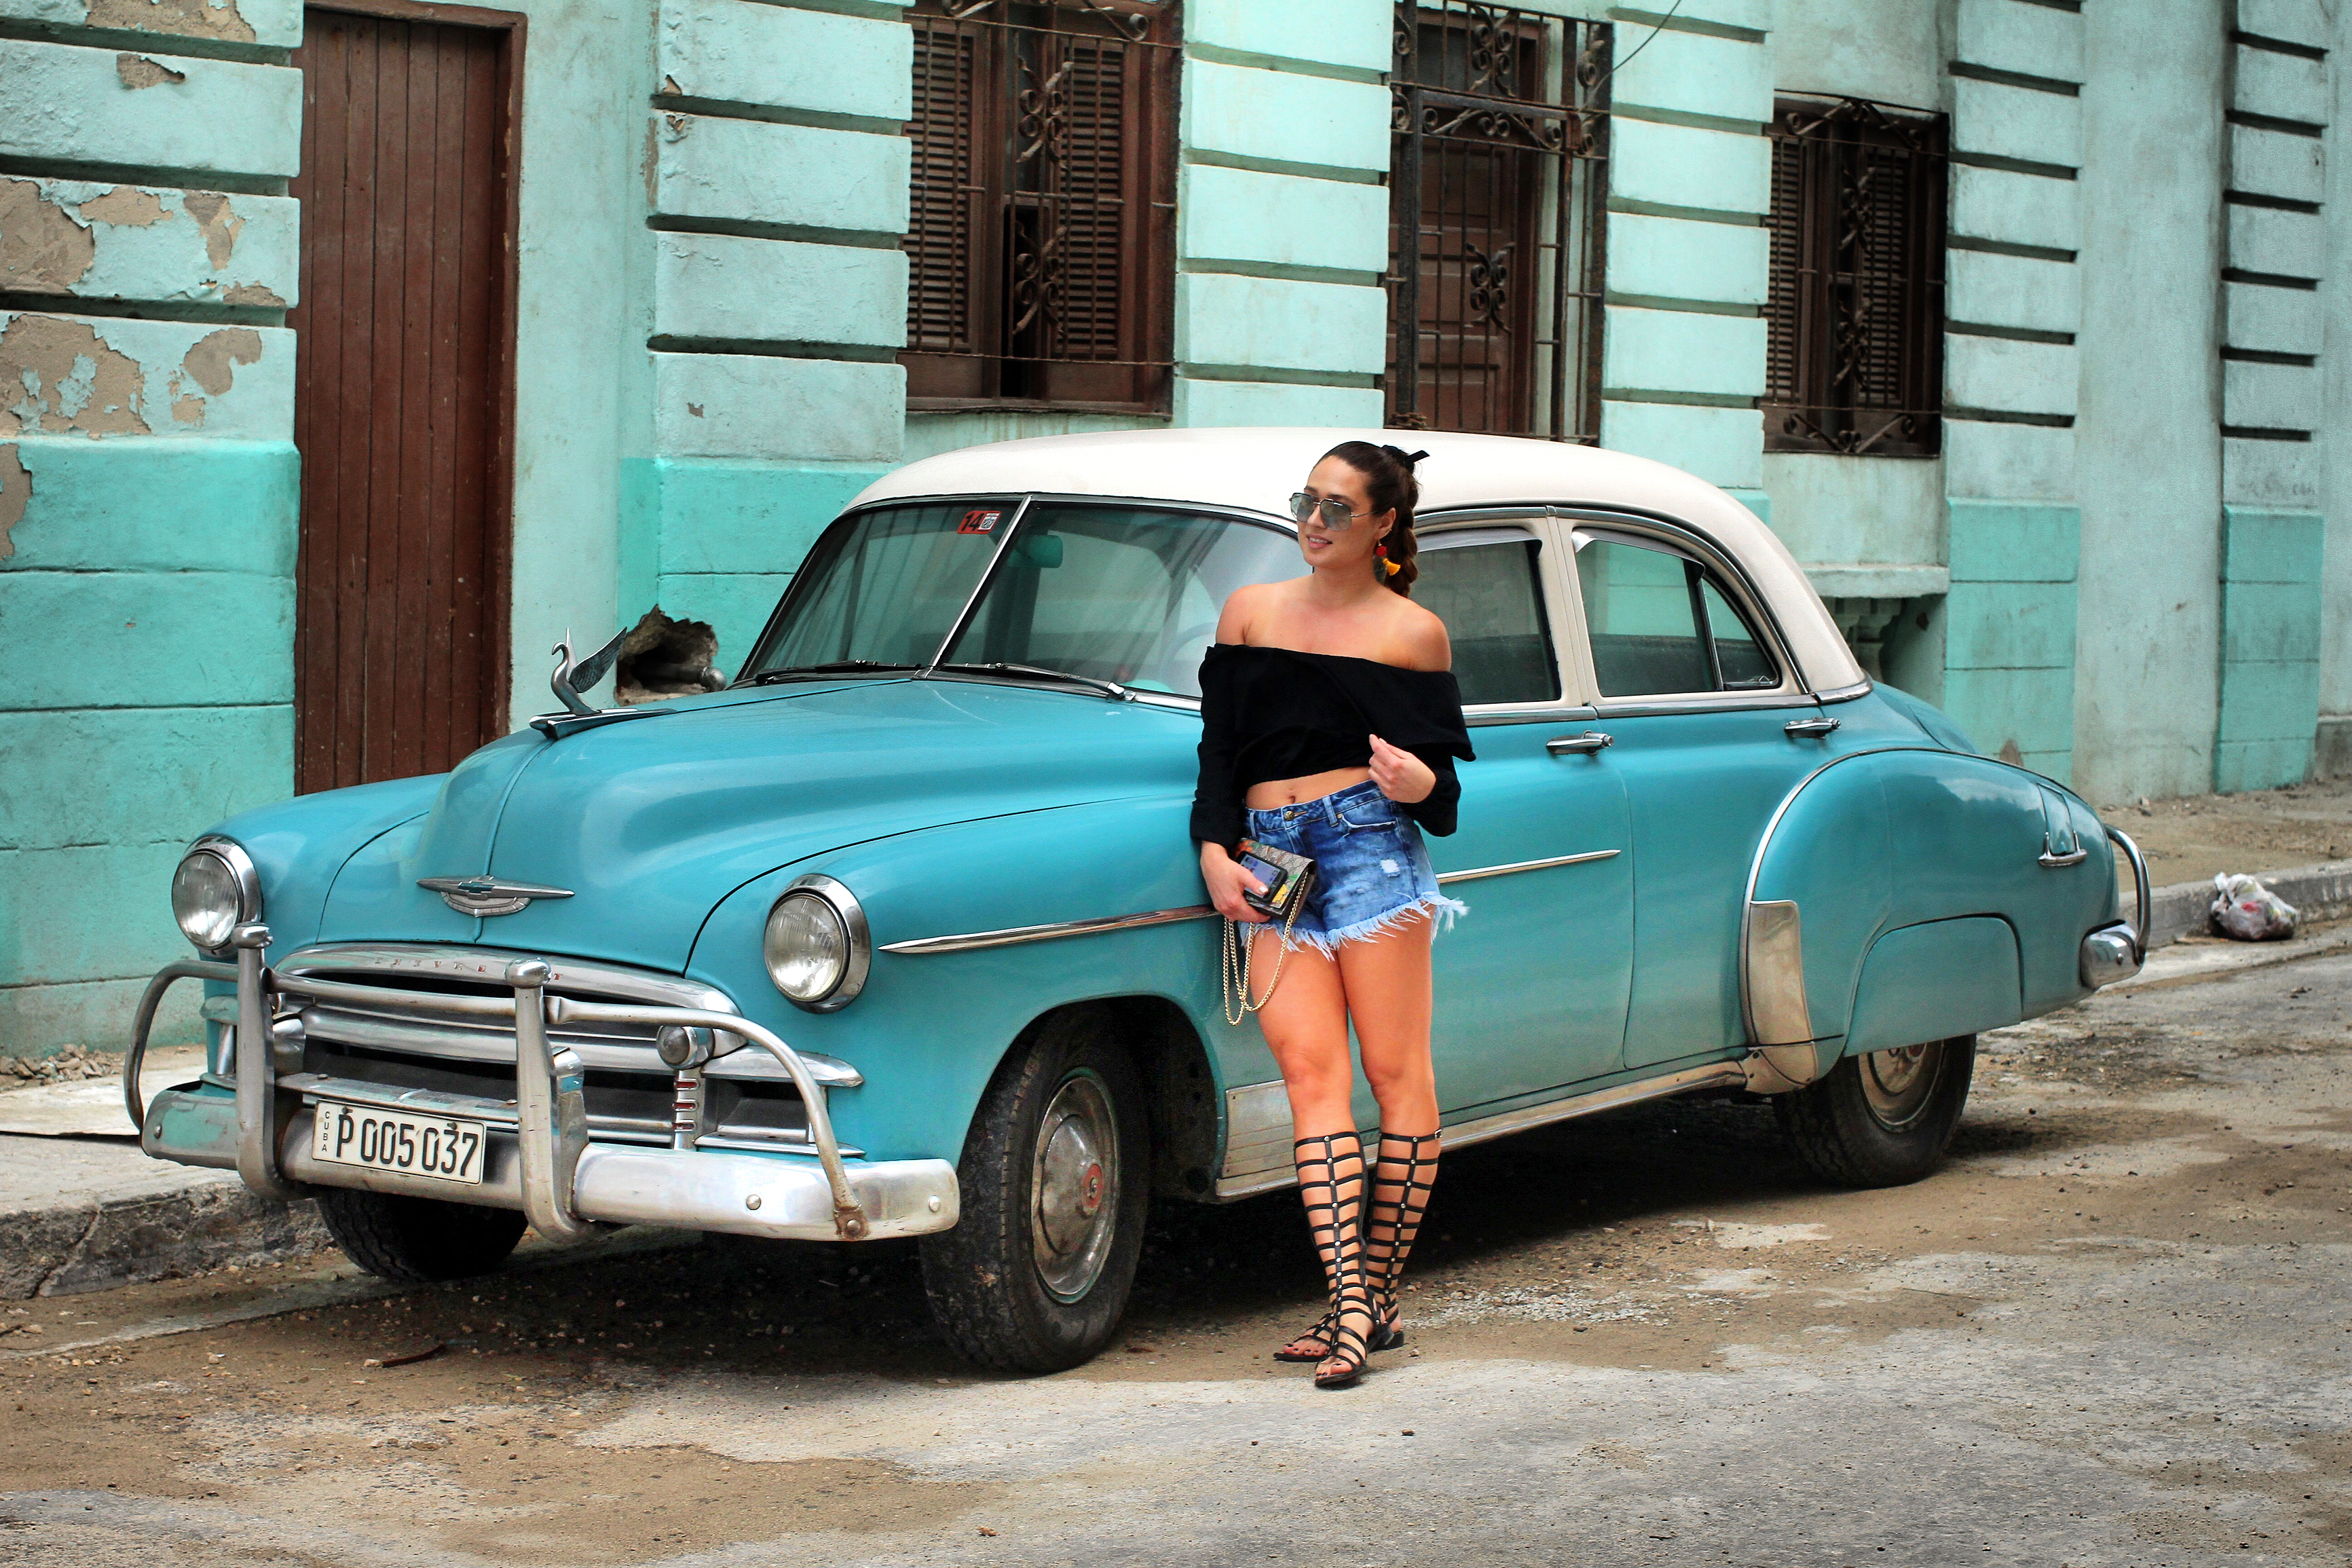 girl-and-old-car-in-cuba